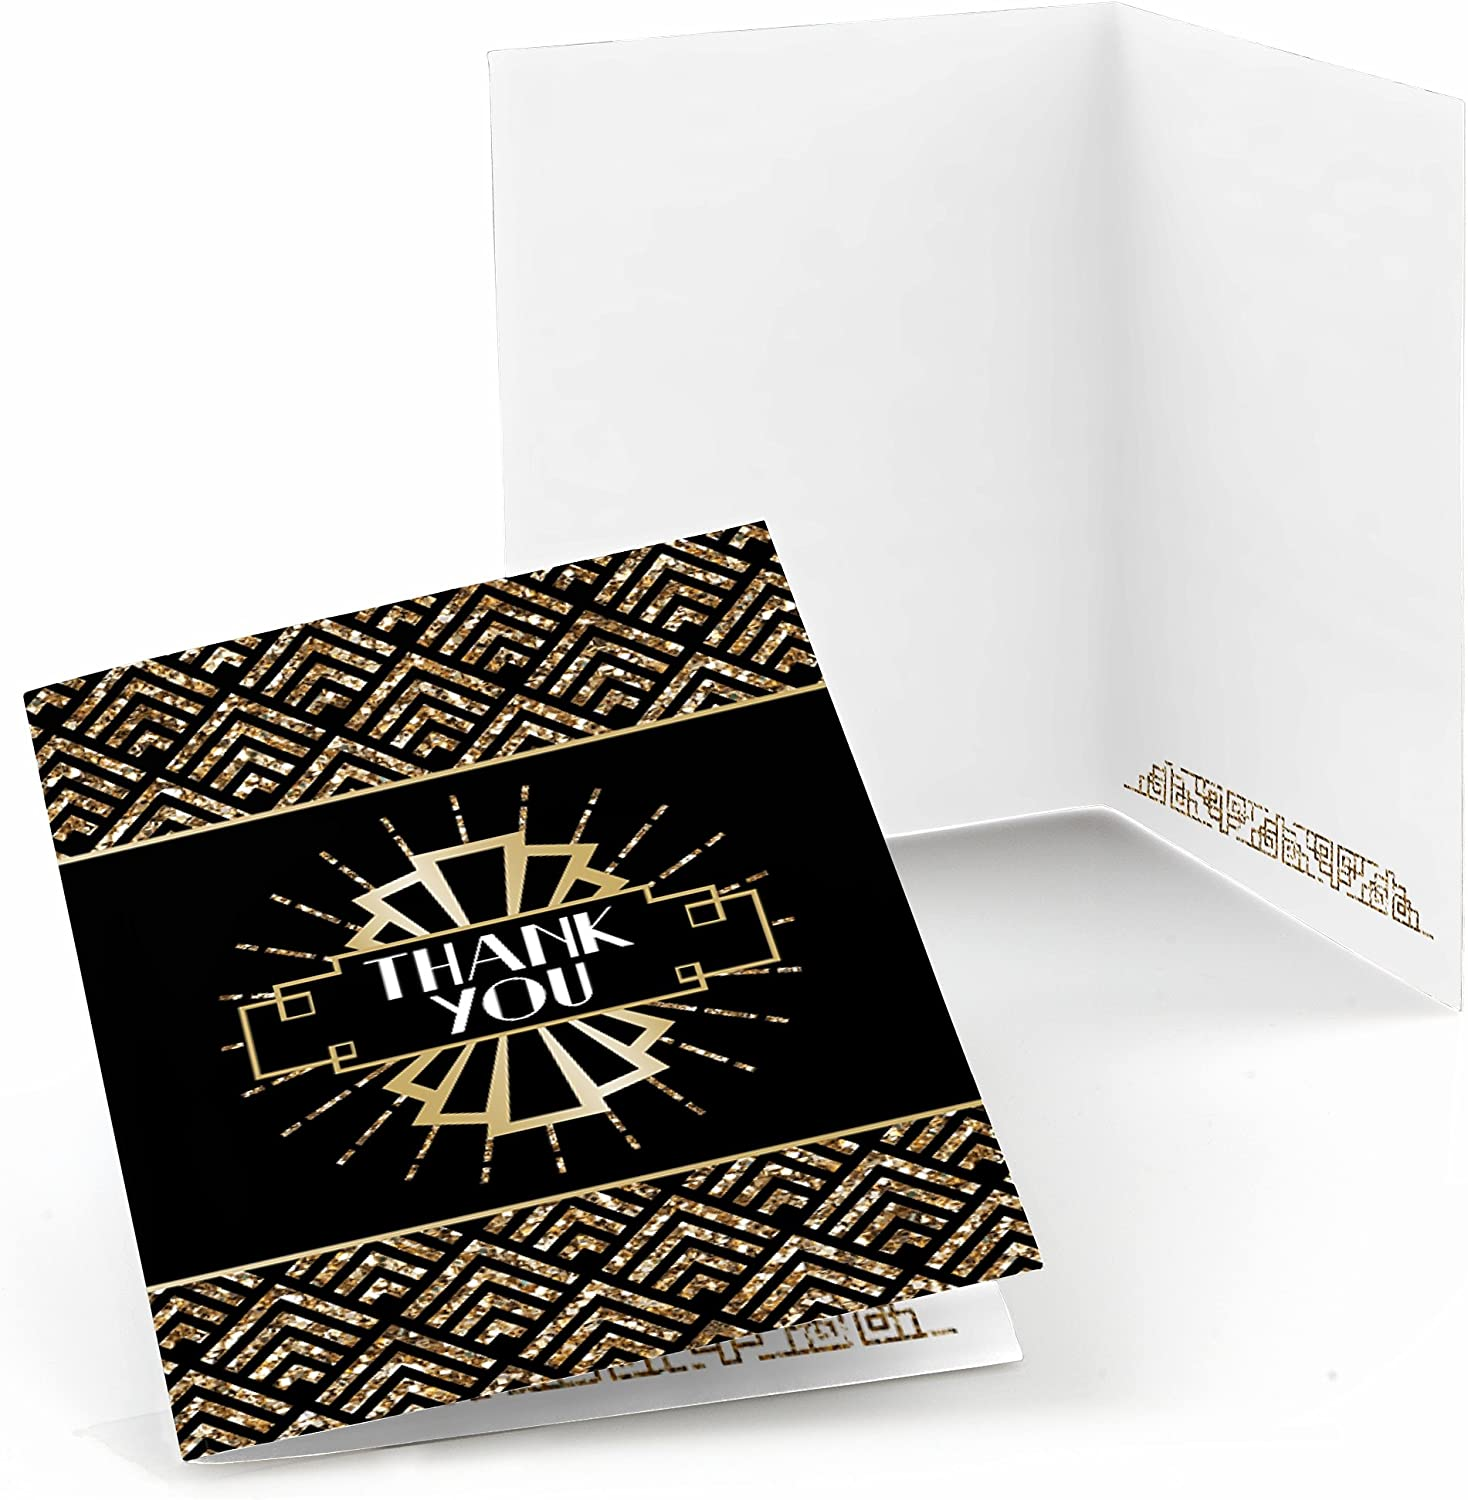 Roaring 20's - 1920s Art Deco Jazz Party Thank You Cards (8 Count)